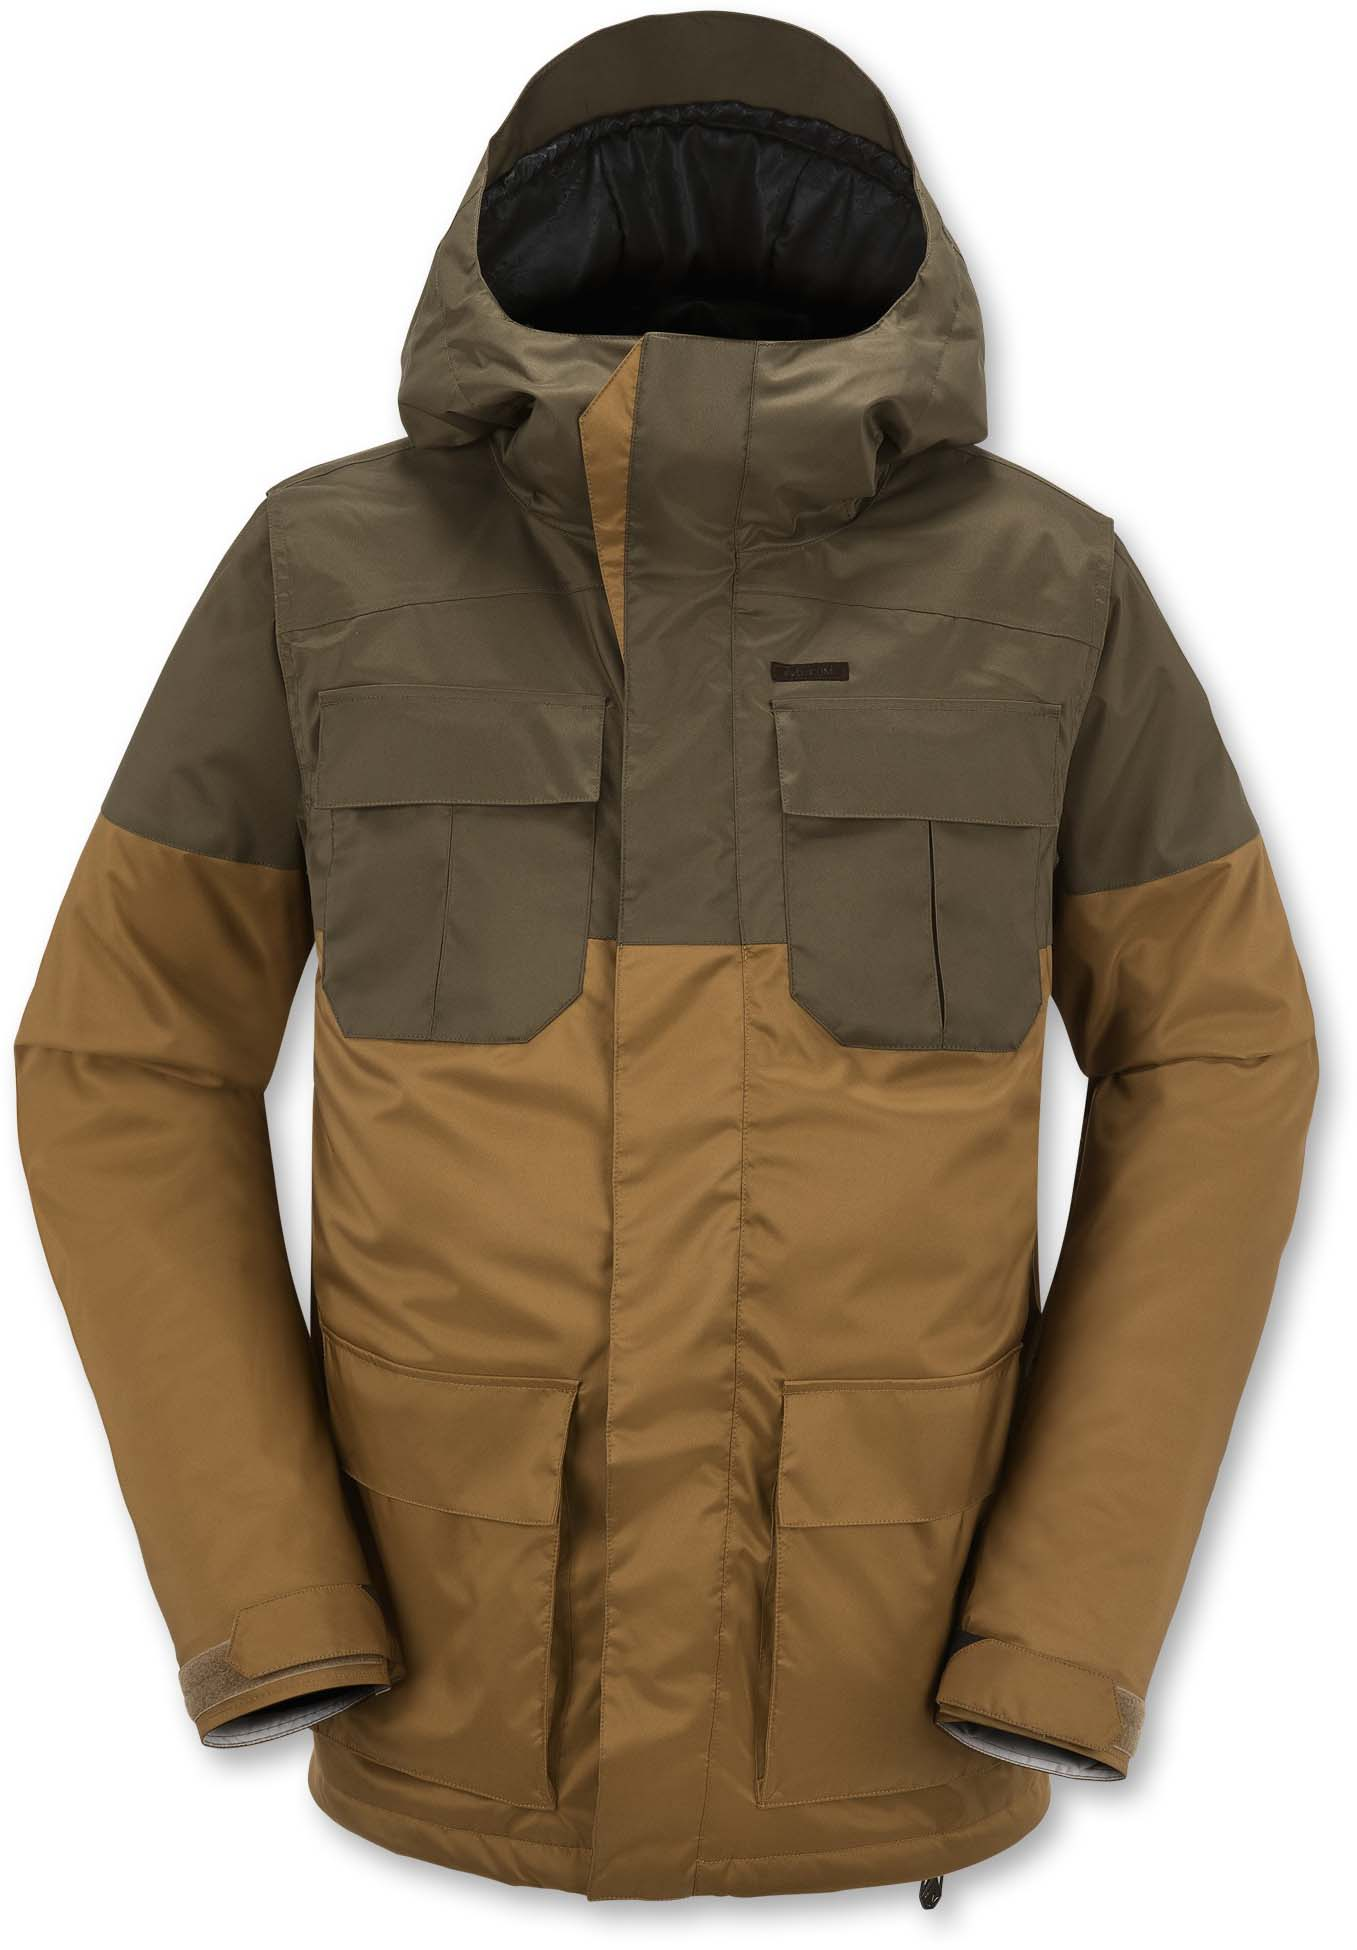 image volcom-alternate-insulated-jacket-caramel-jpg